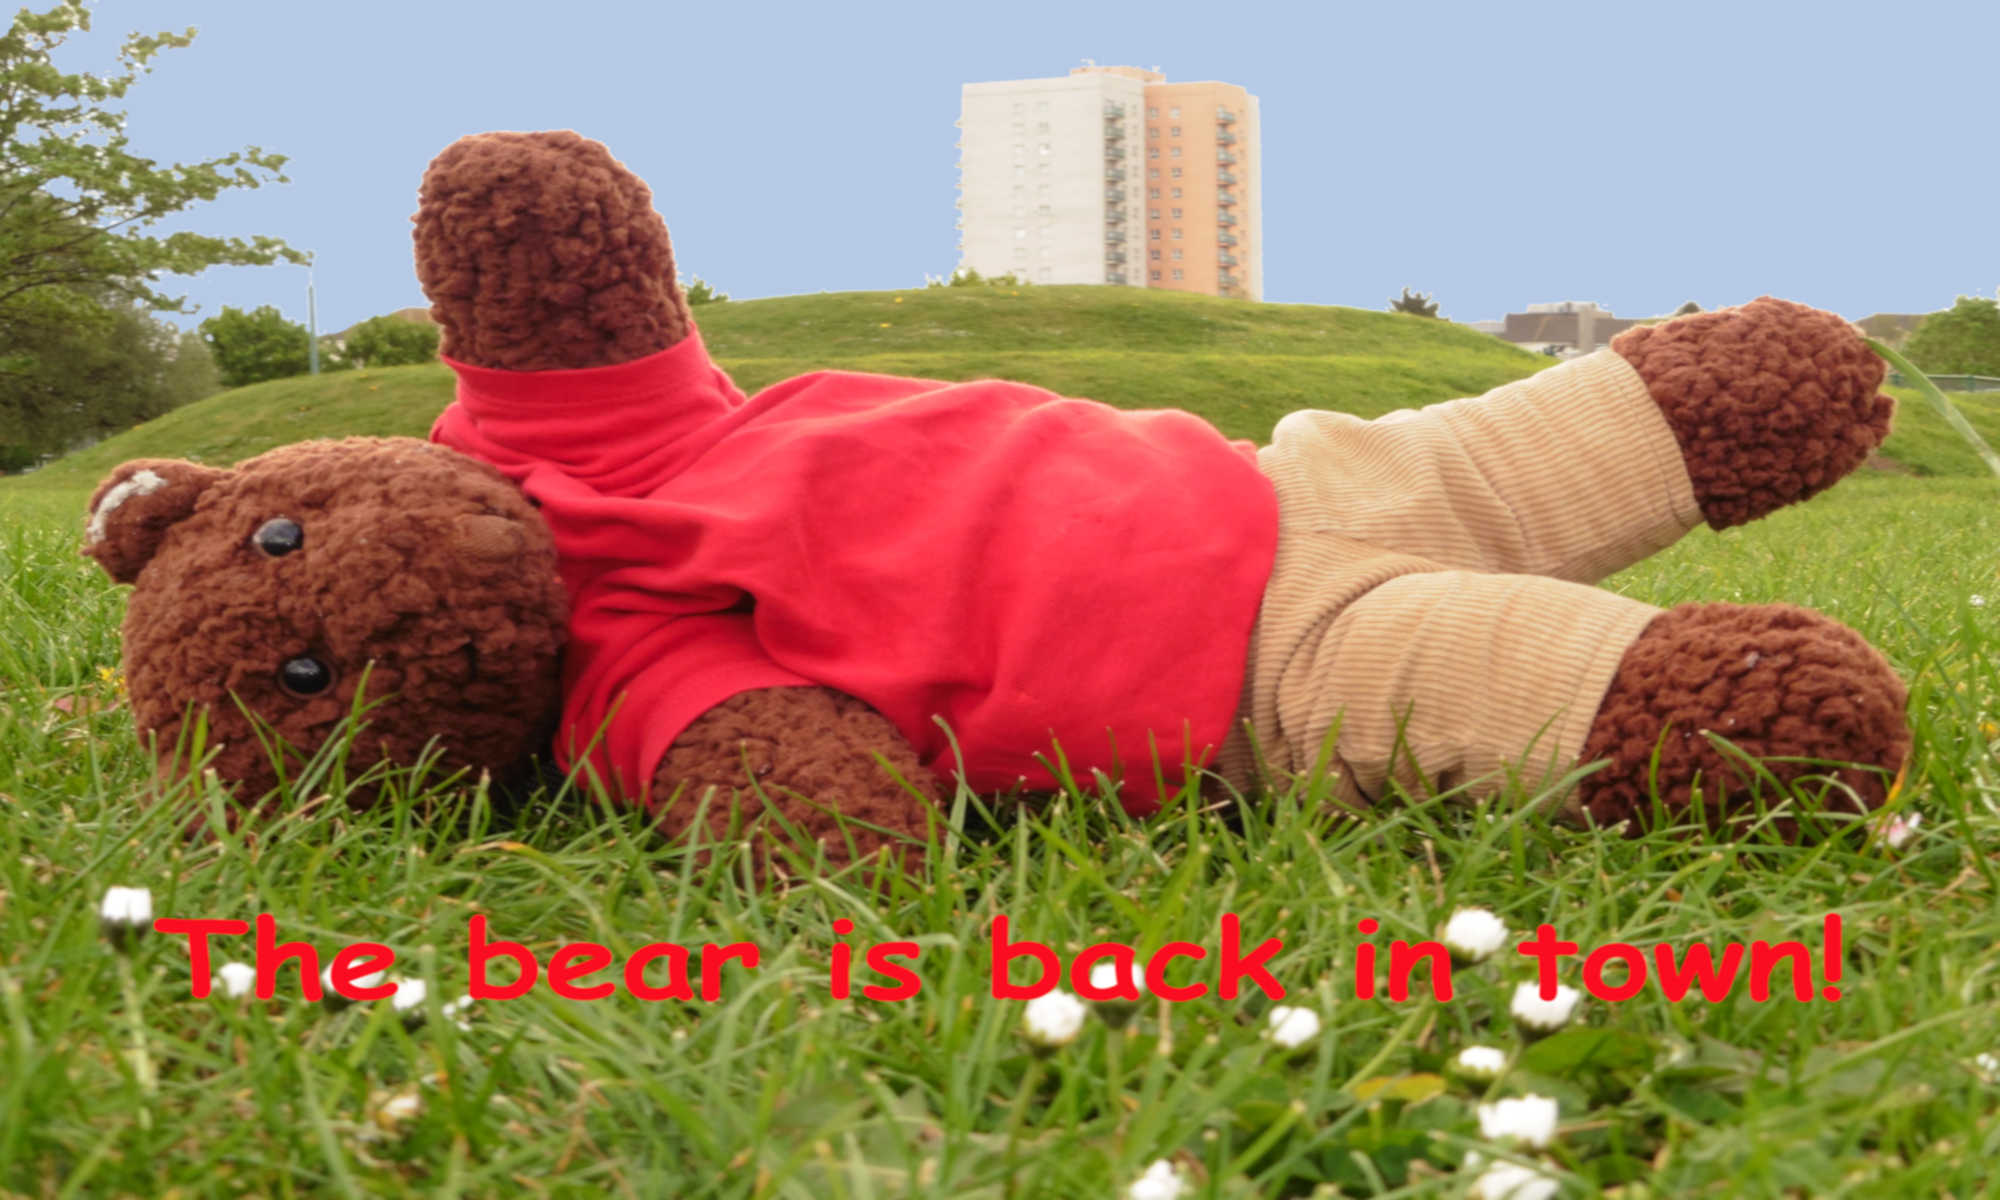 Hero image. Bearsac lying on grass with tower block in background.